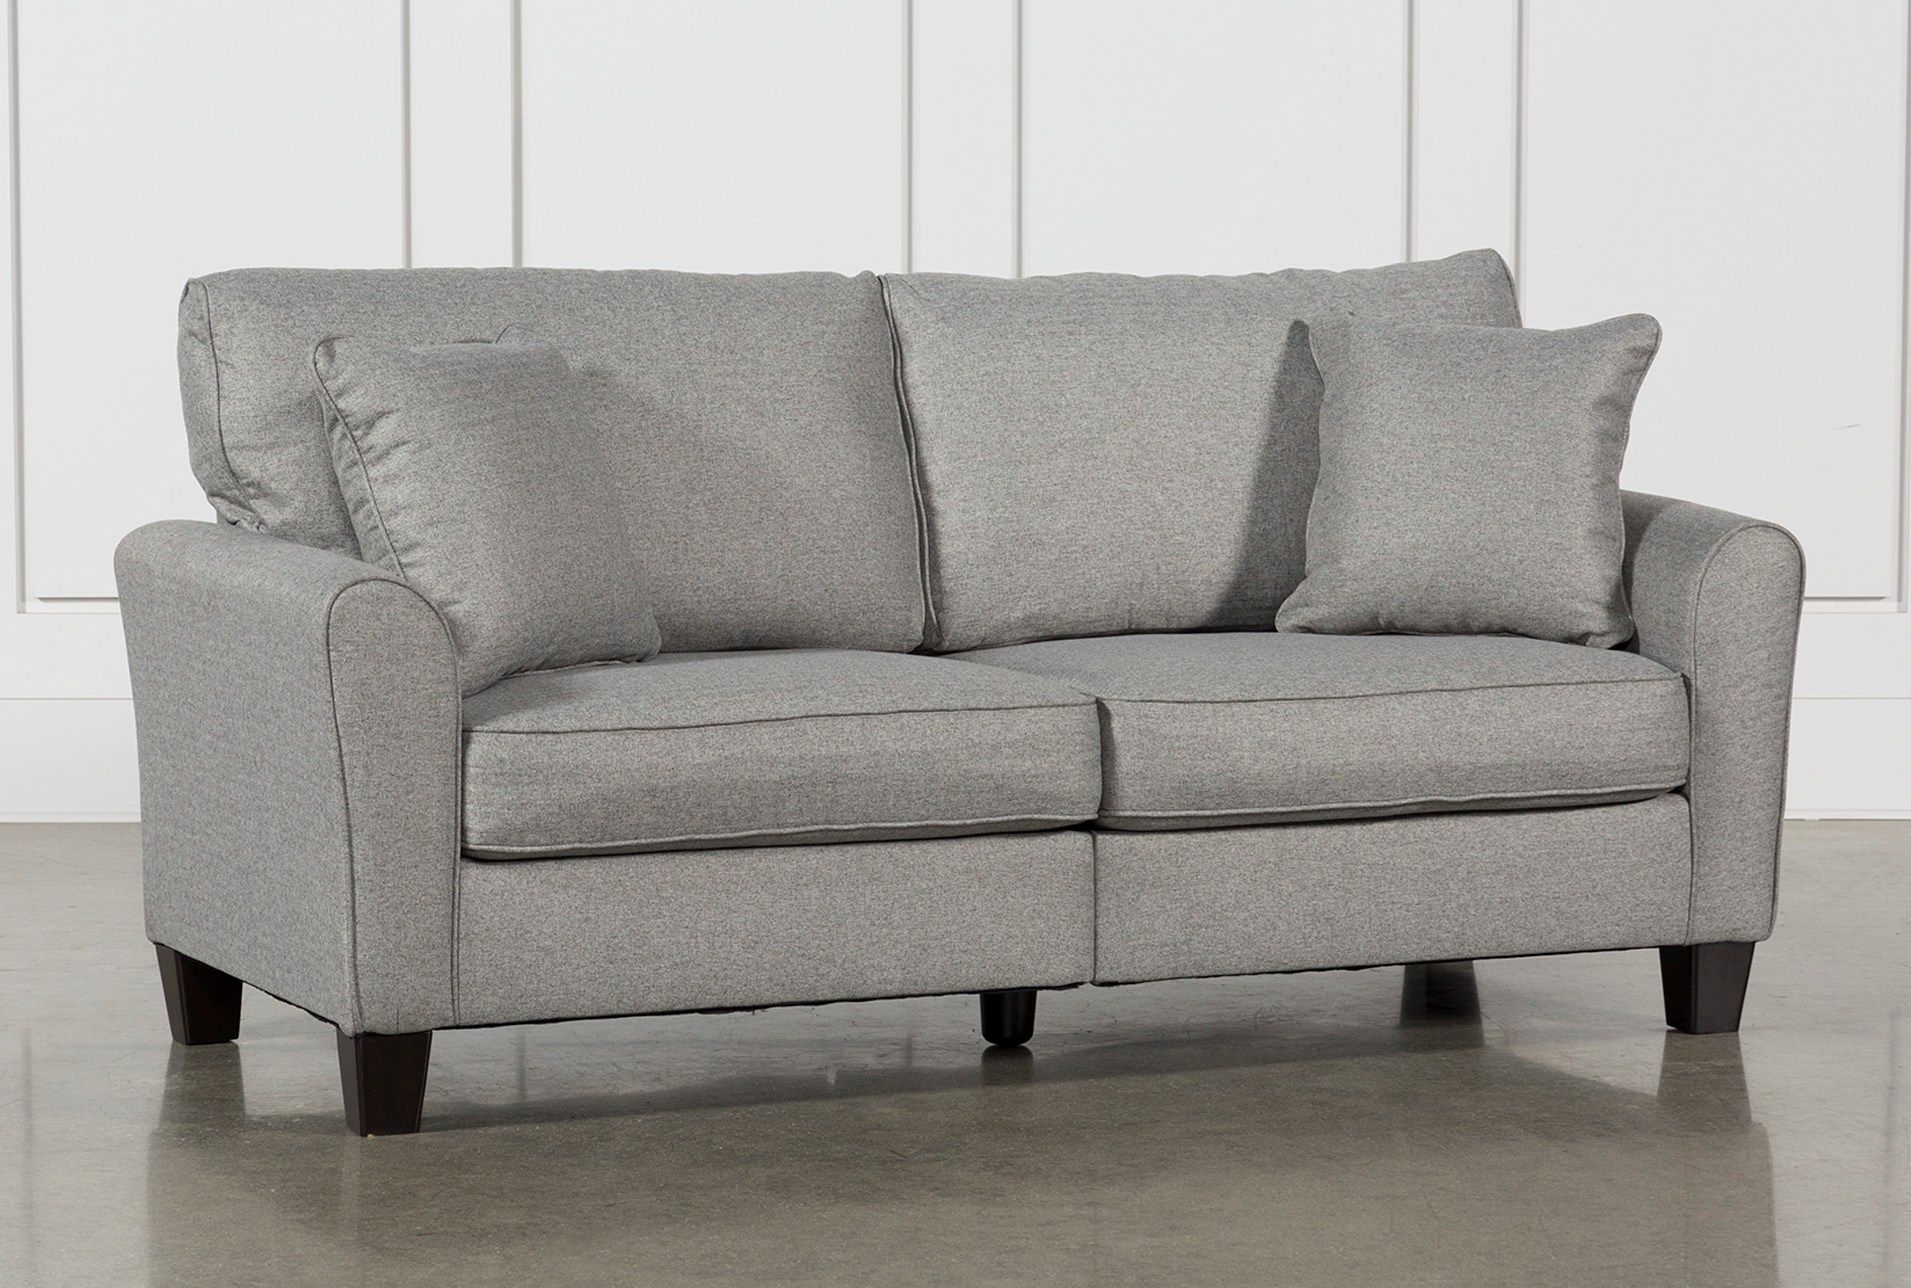 Tilly Sofa In A Box Qty 1 Has Been Successfully Added To Your Cart